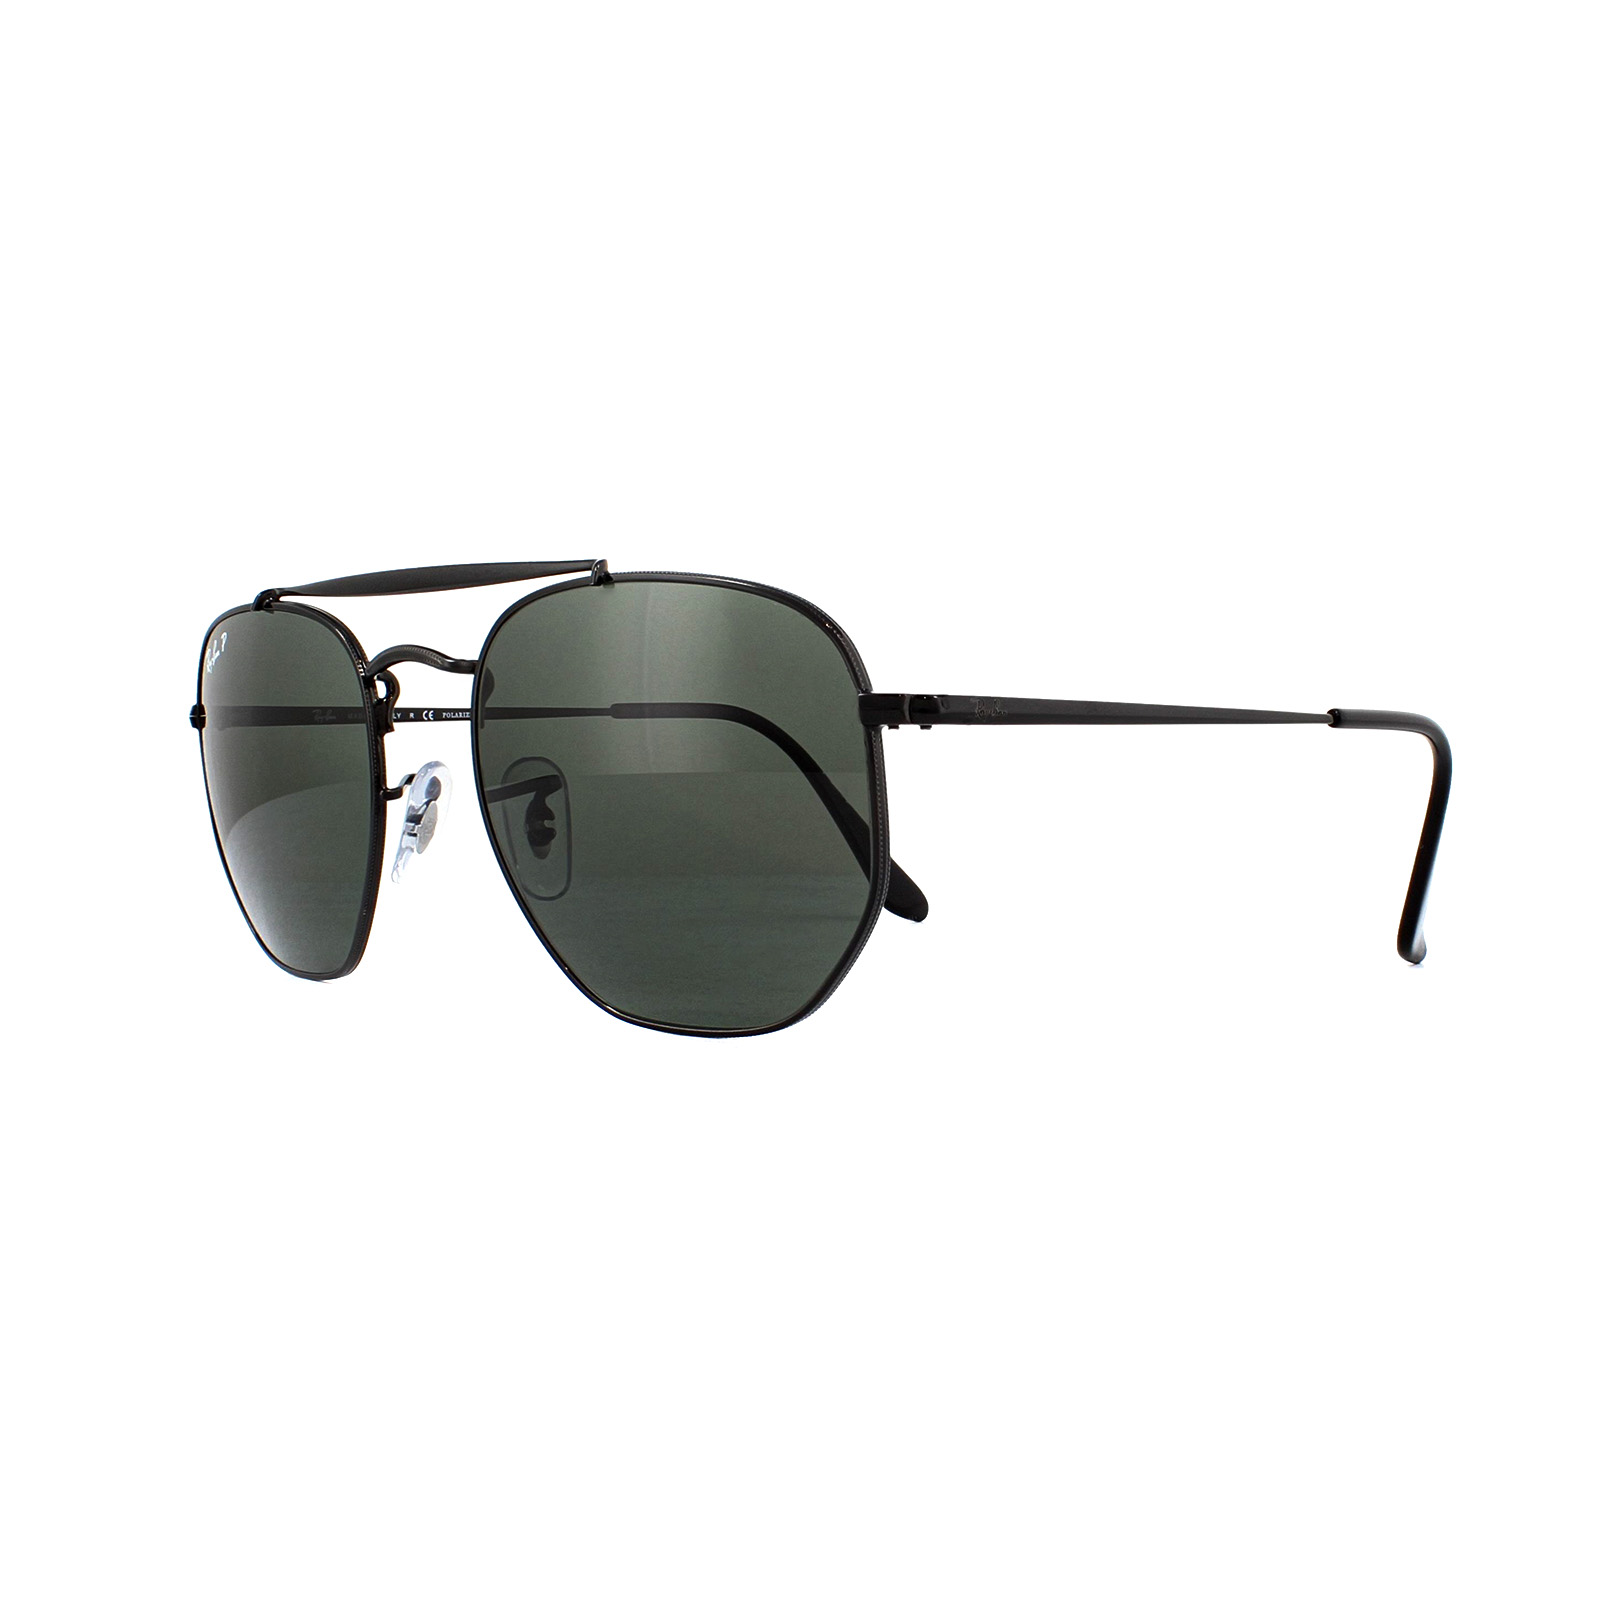 427b145509c Sentinel Ray-Ban Sunglasses Marshal 3648 002 58 Black Green Polarized